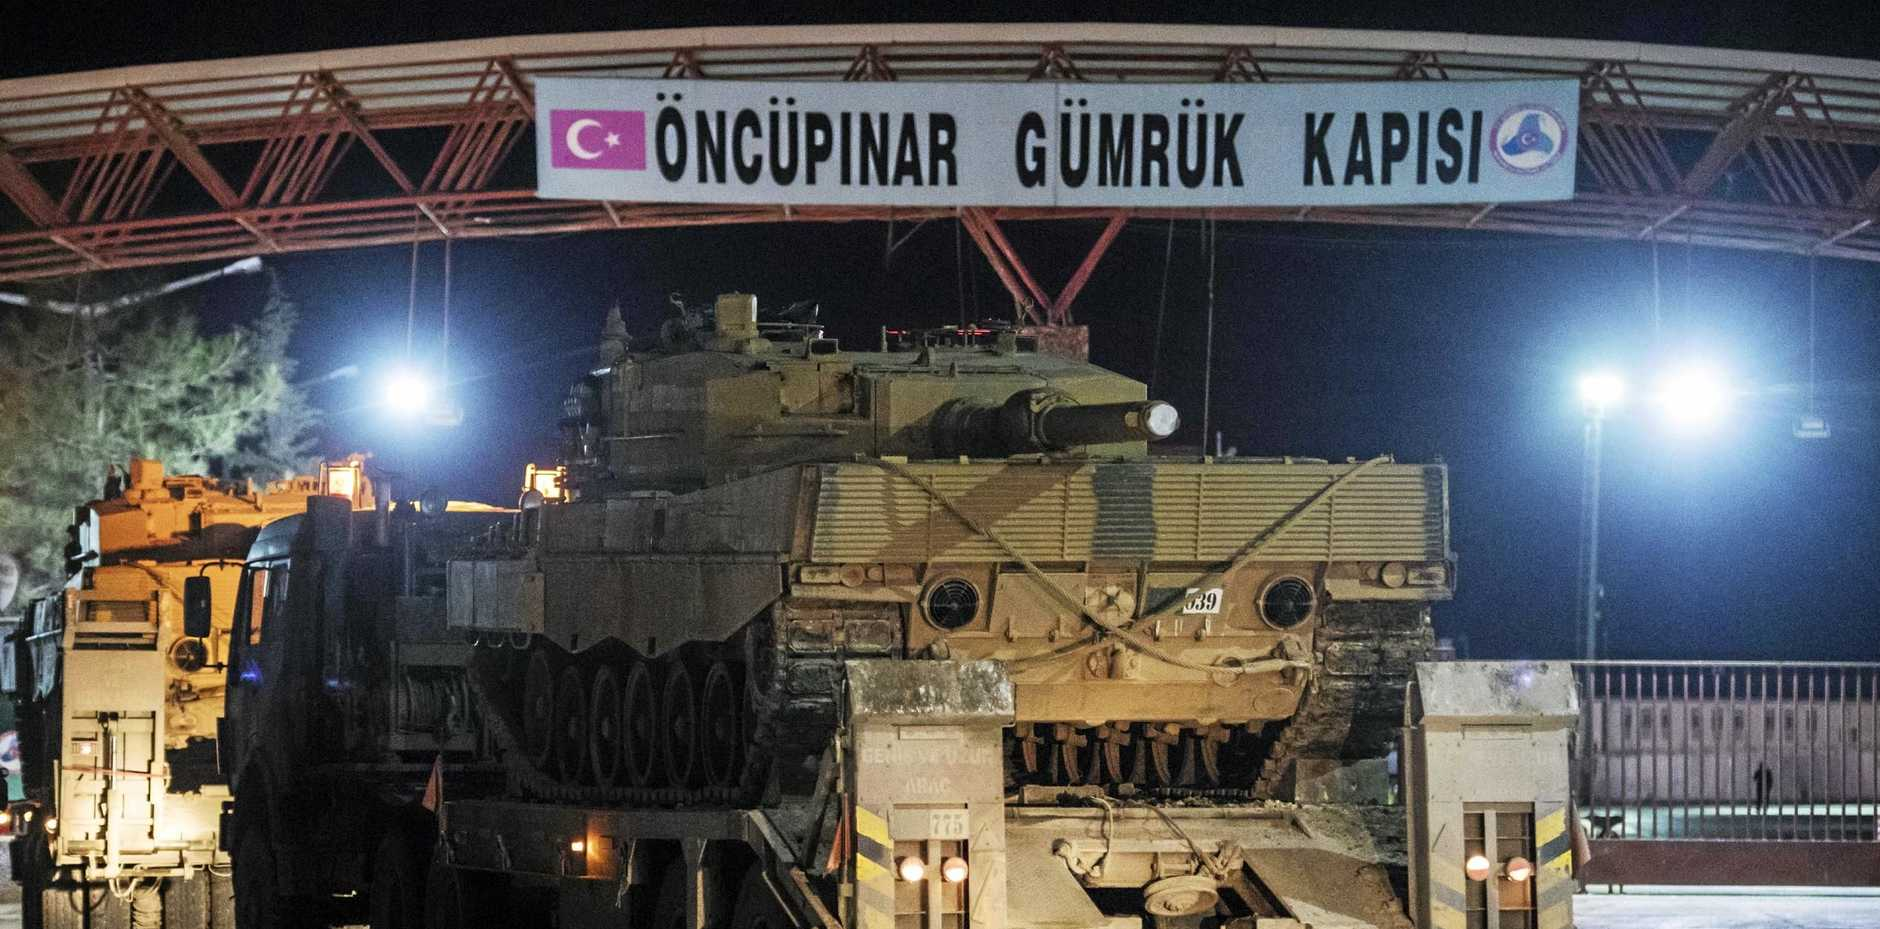 Turkish military trucks carrying tanks and other armoured vehicles cross through a border gate into a Turkish-controlled region of the Oncupinar border crossing with Syria.